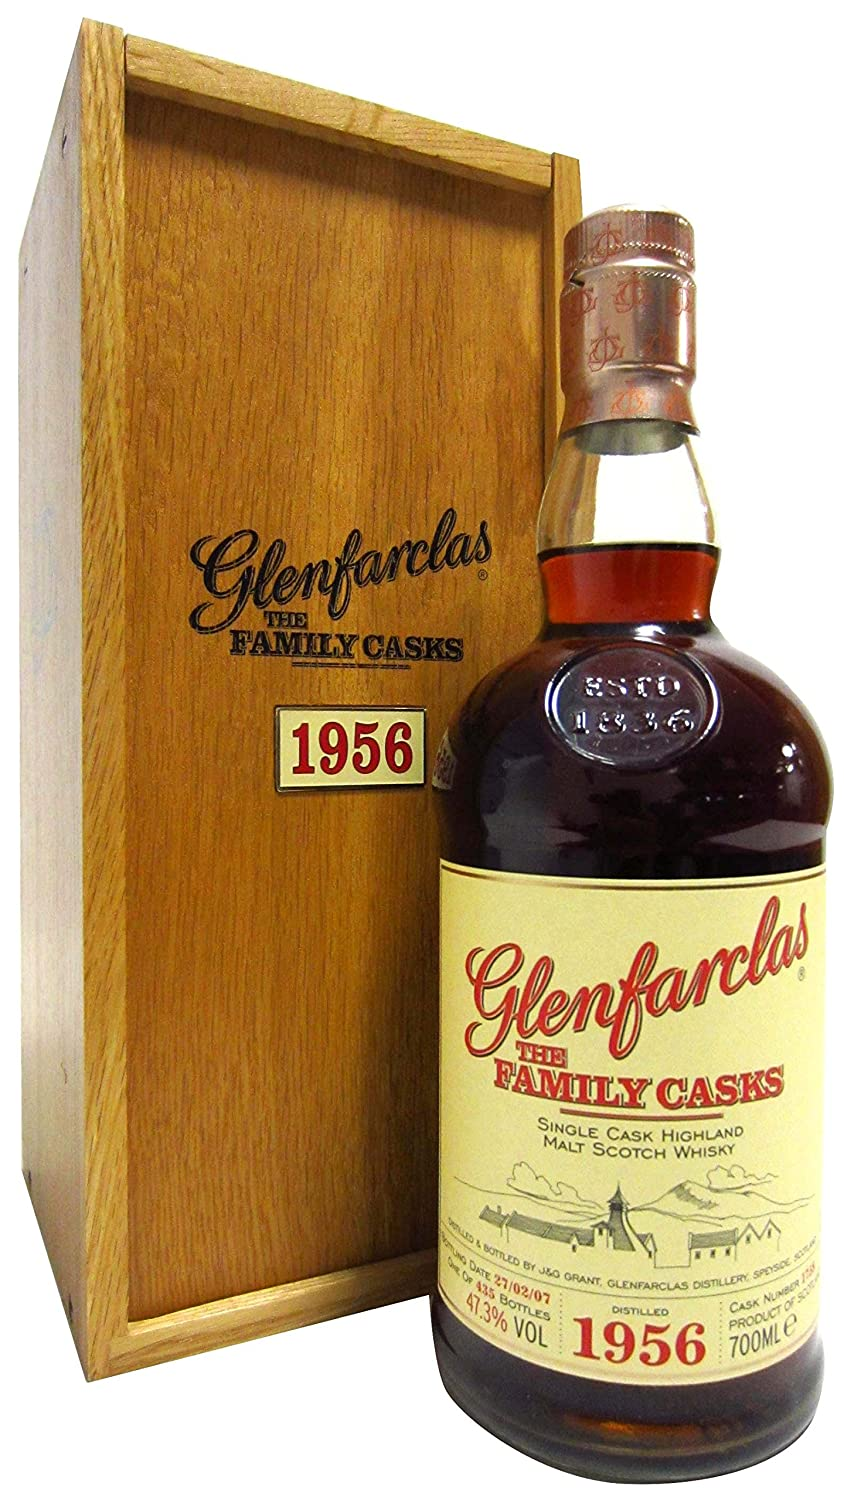 50 Year Old Whiskey >> Glenfarclas The Family Casks 1758 1956 50 Year Old Whisky